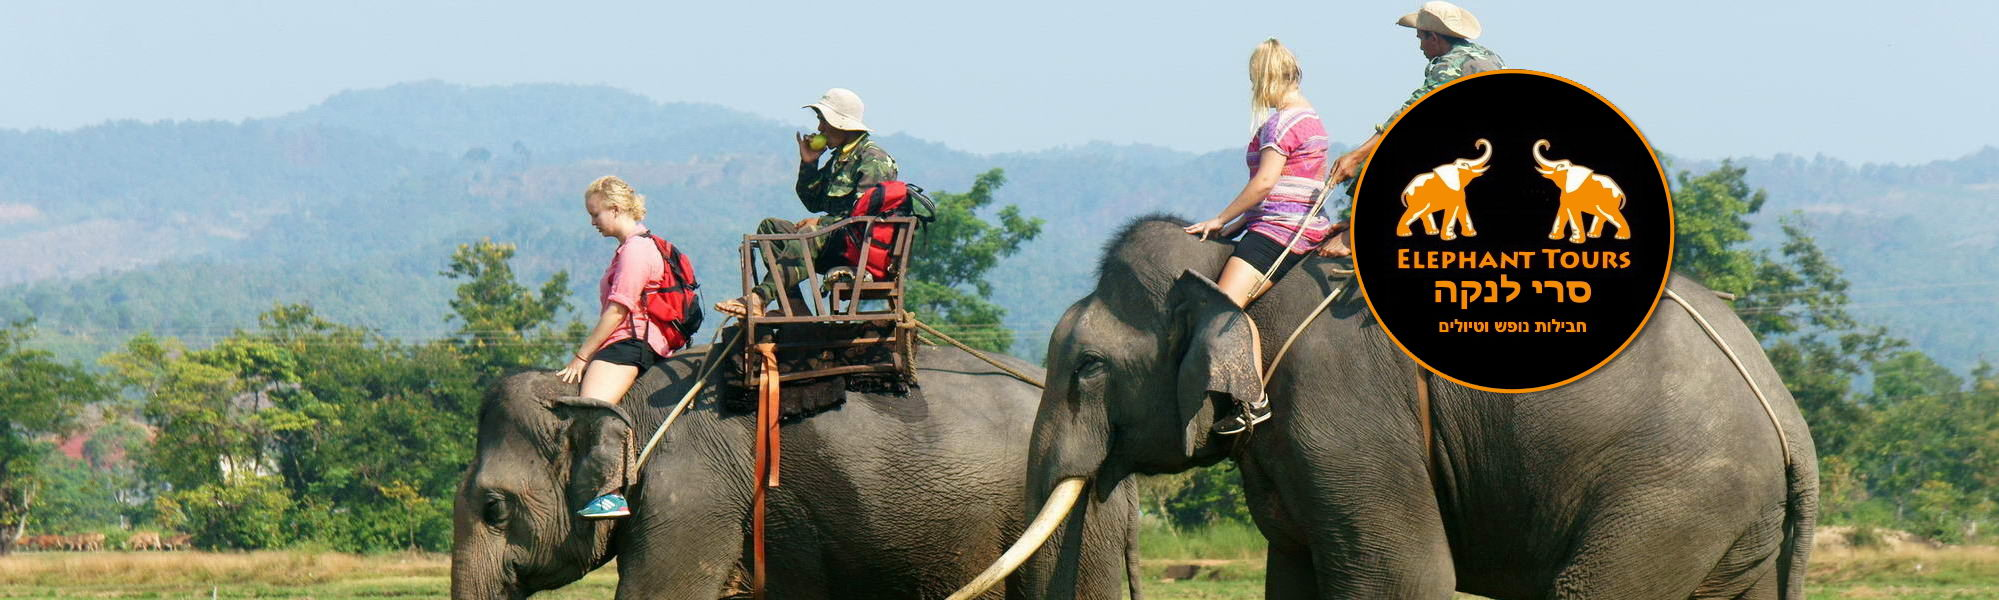 Sri-Lanka-Elephant-Ride-1